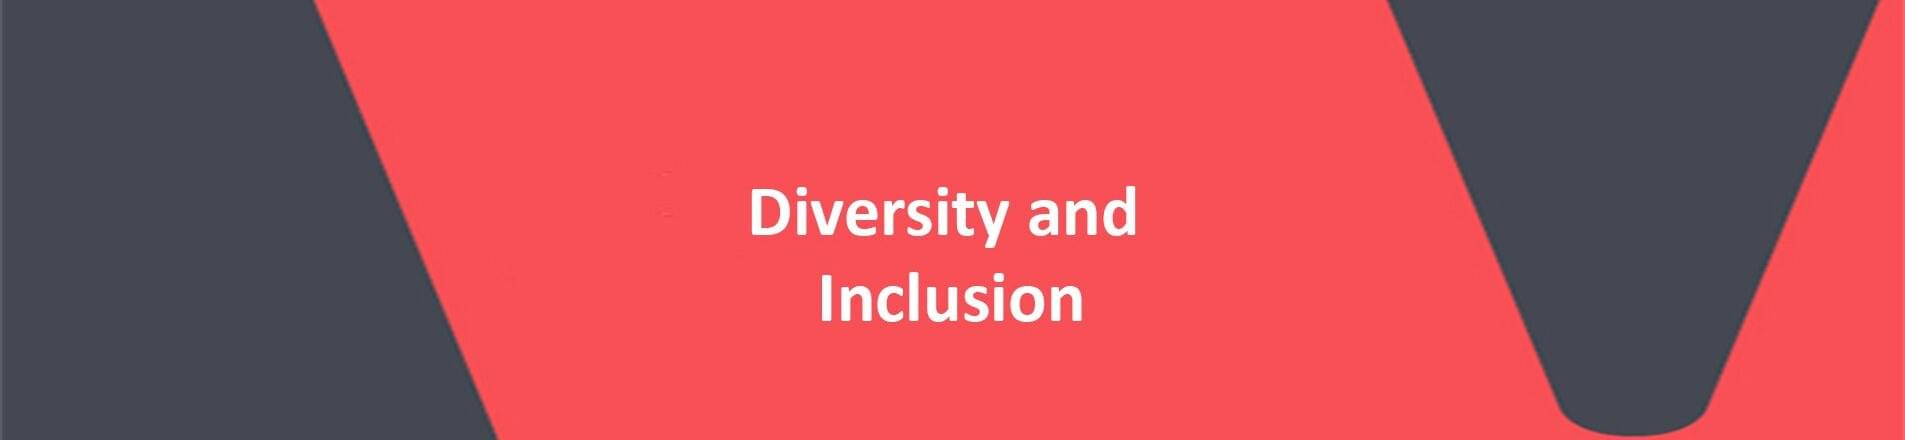 Red background with white text overlaid spelling, Diversity and Inclusion.